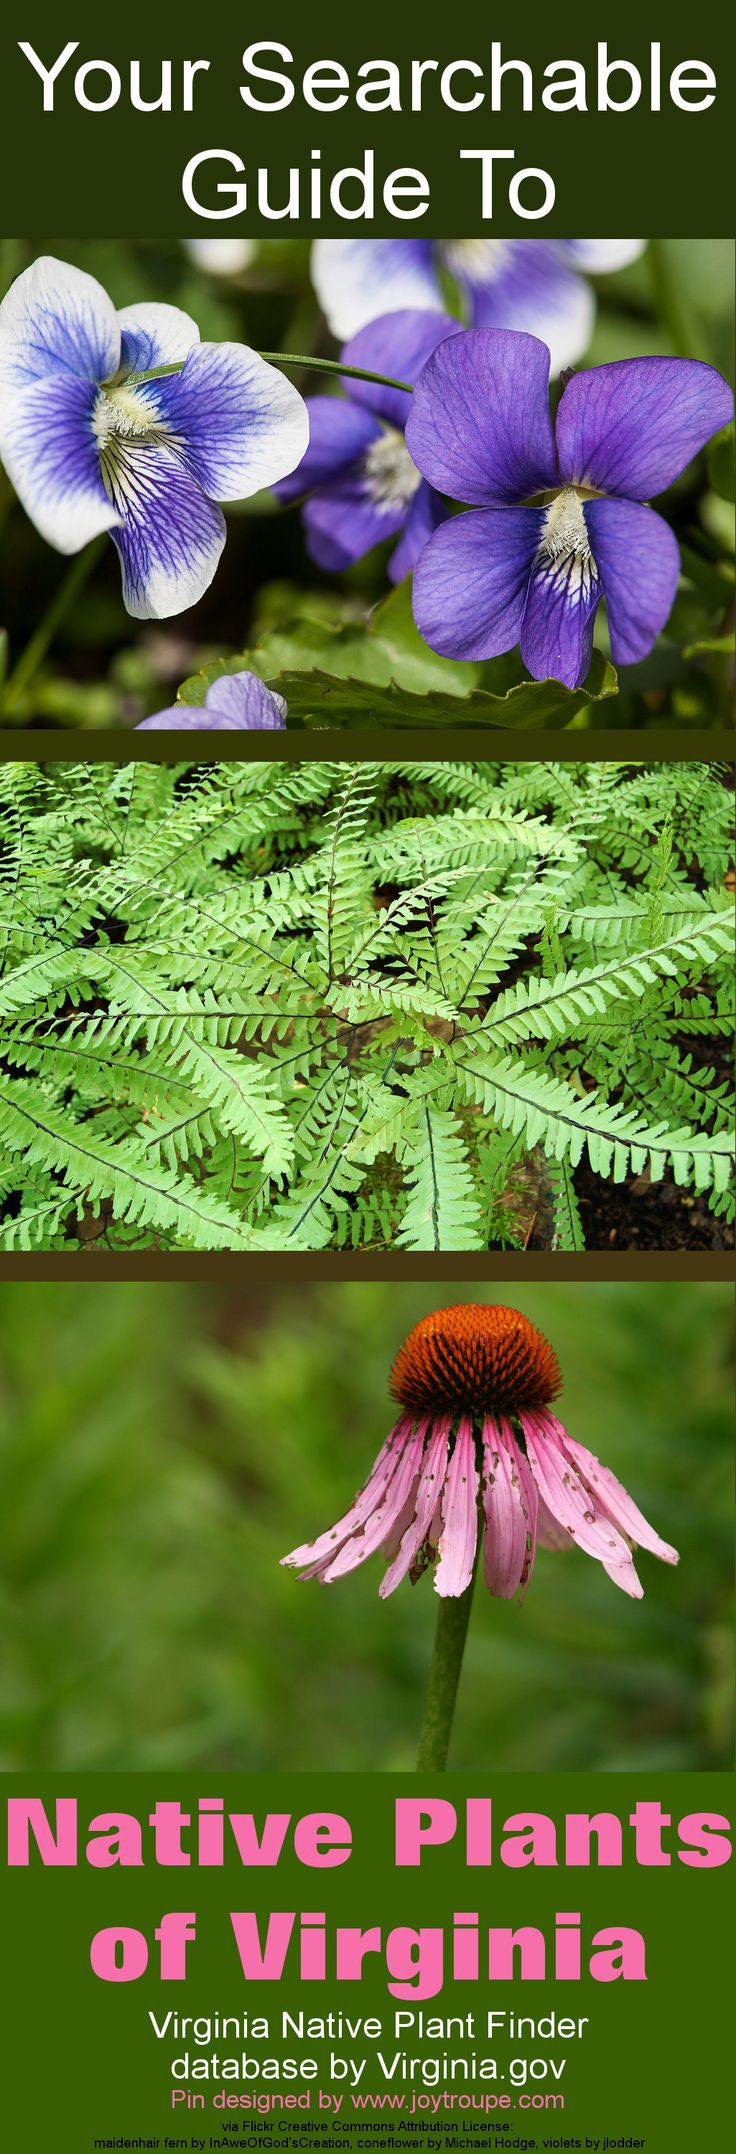 Virginia Native Plants Database  http://www.dcr.virginia.gov/natural_heritage/np.shtml  #garden #virginia  Plant images used under Creative Commons Attribution License: http://creativecommons.org/licenses/by/2.0/